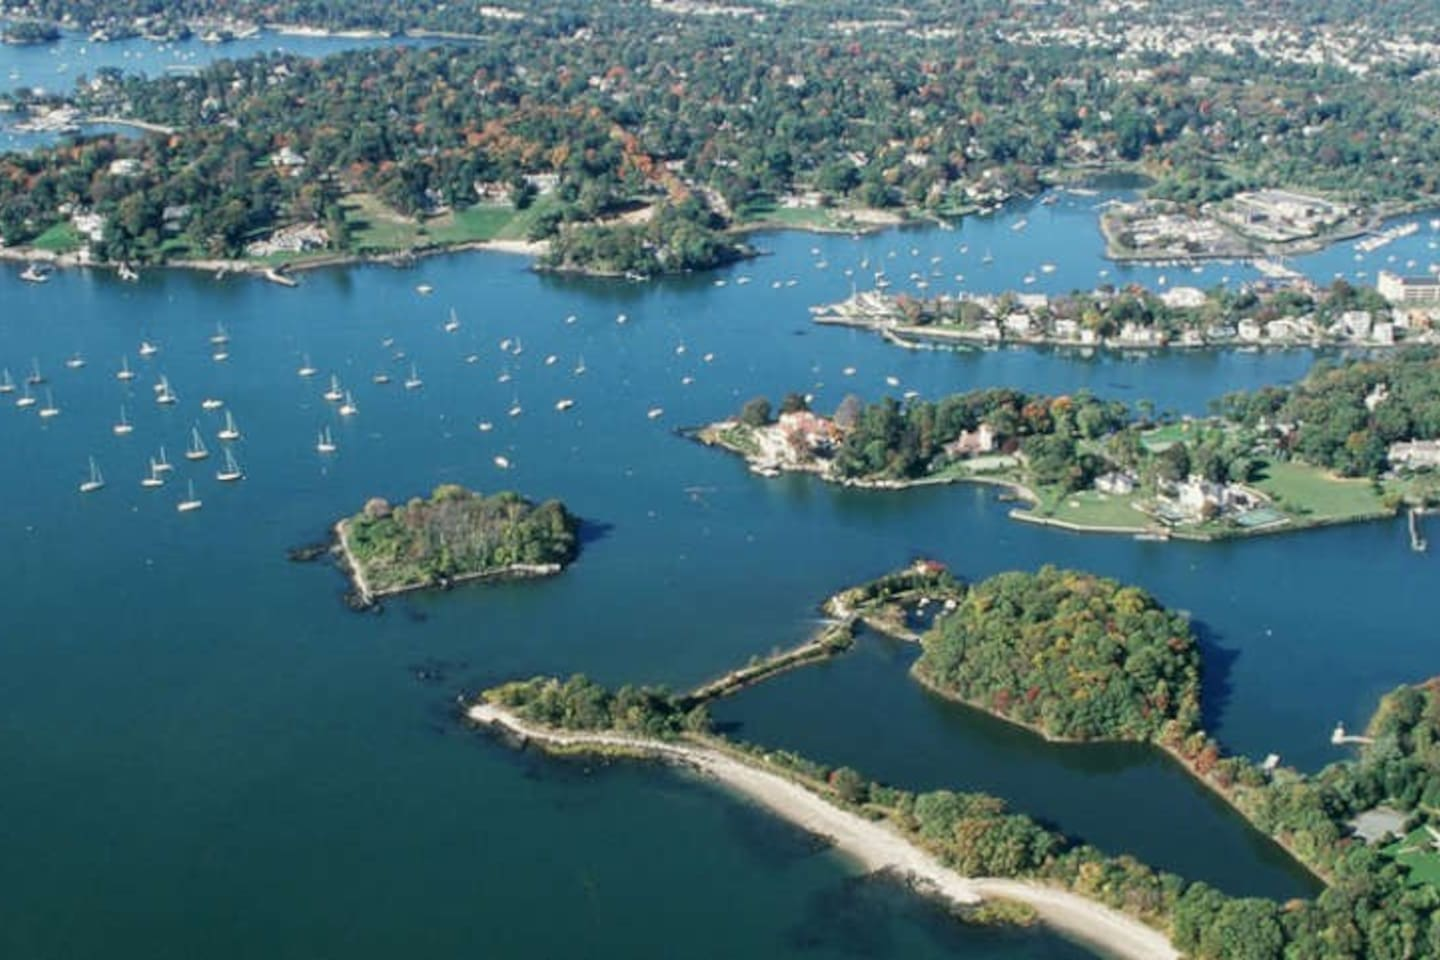 My Bruce Park Neighborhood. Walk to water and Indian Harbor Yacht Club.